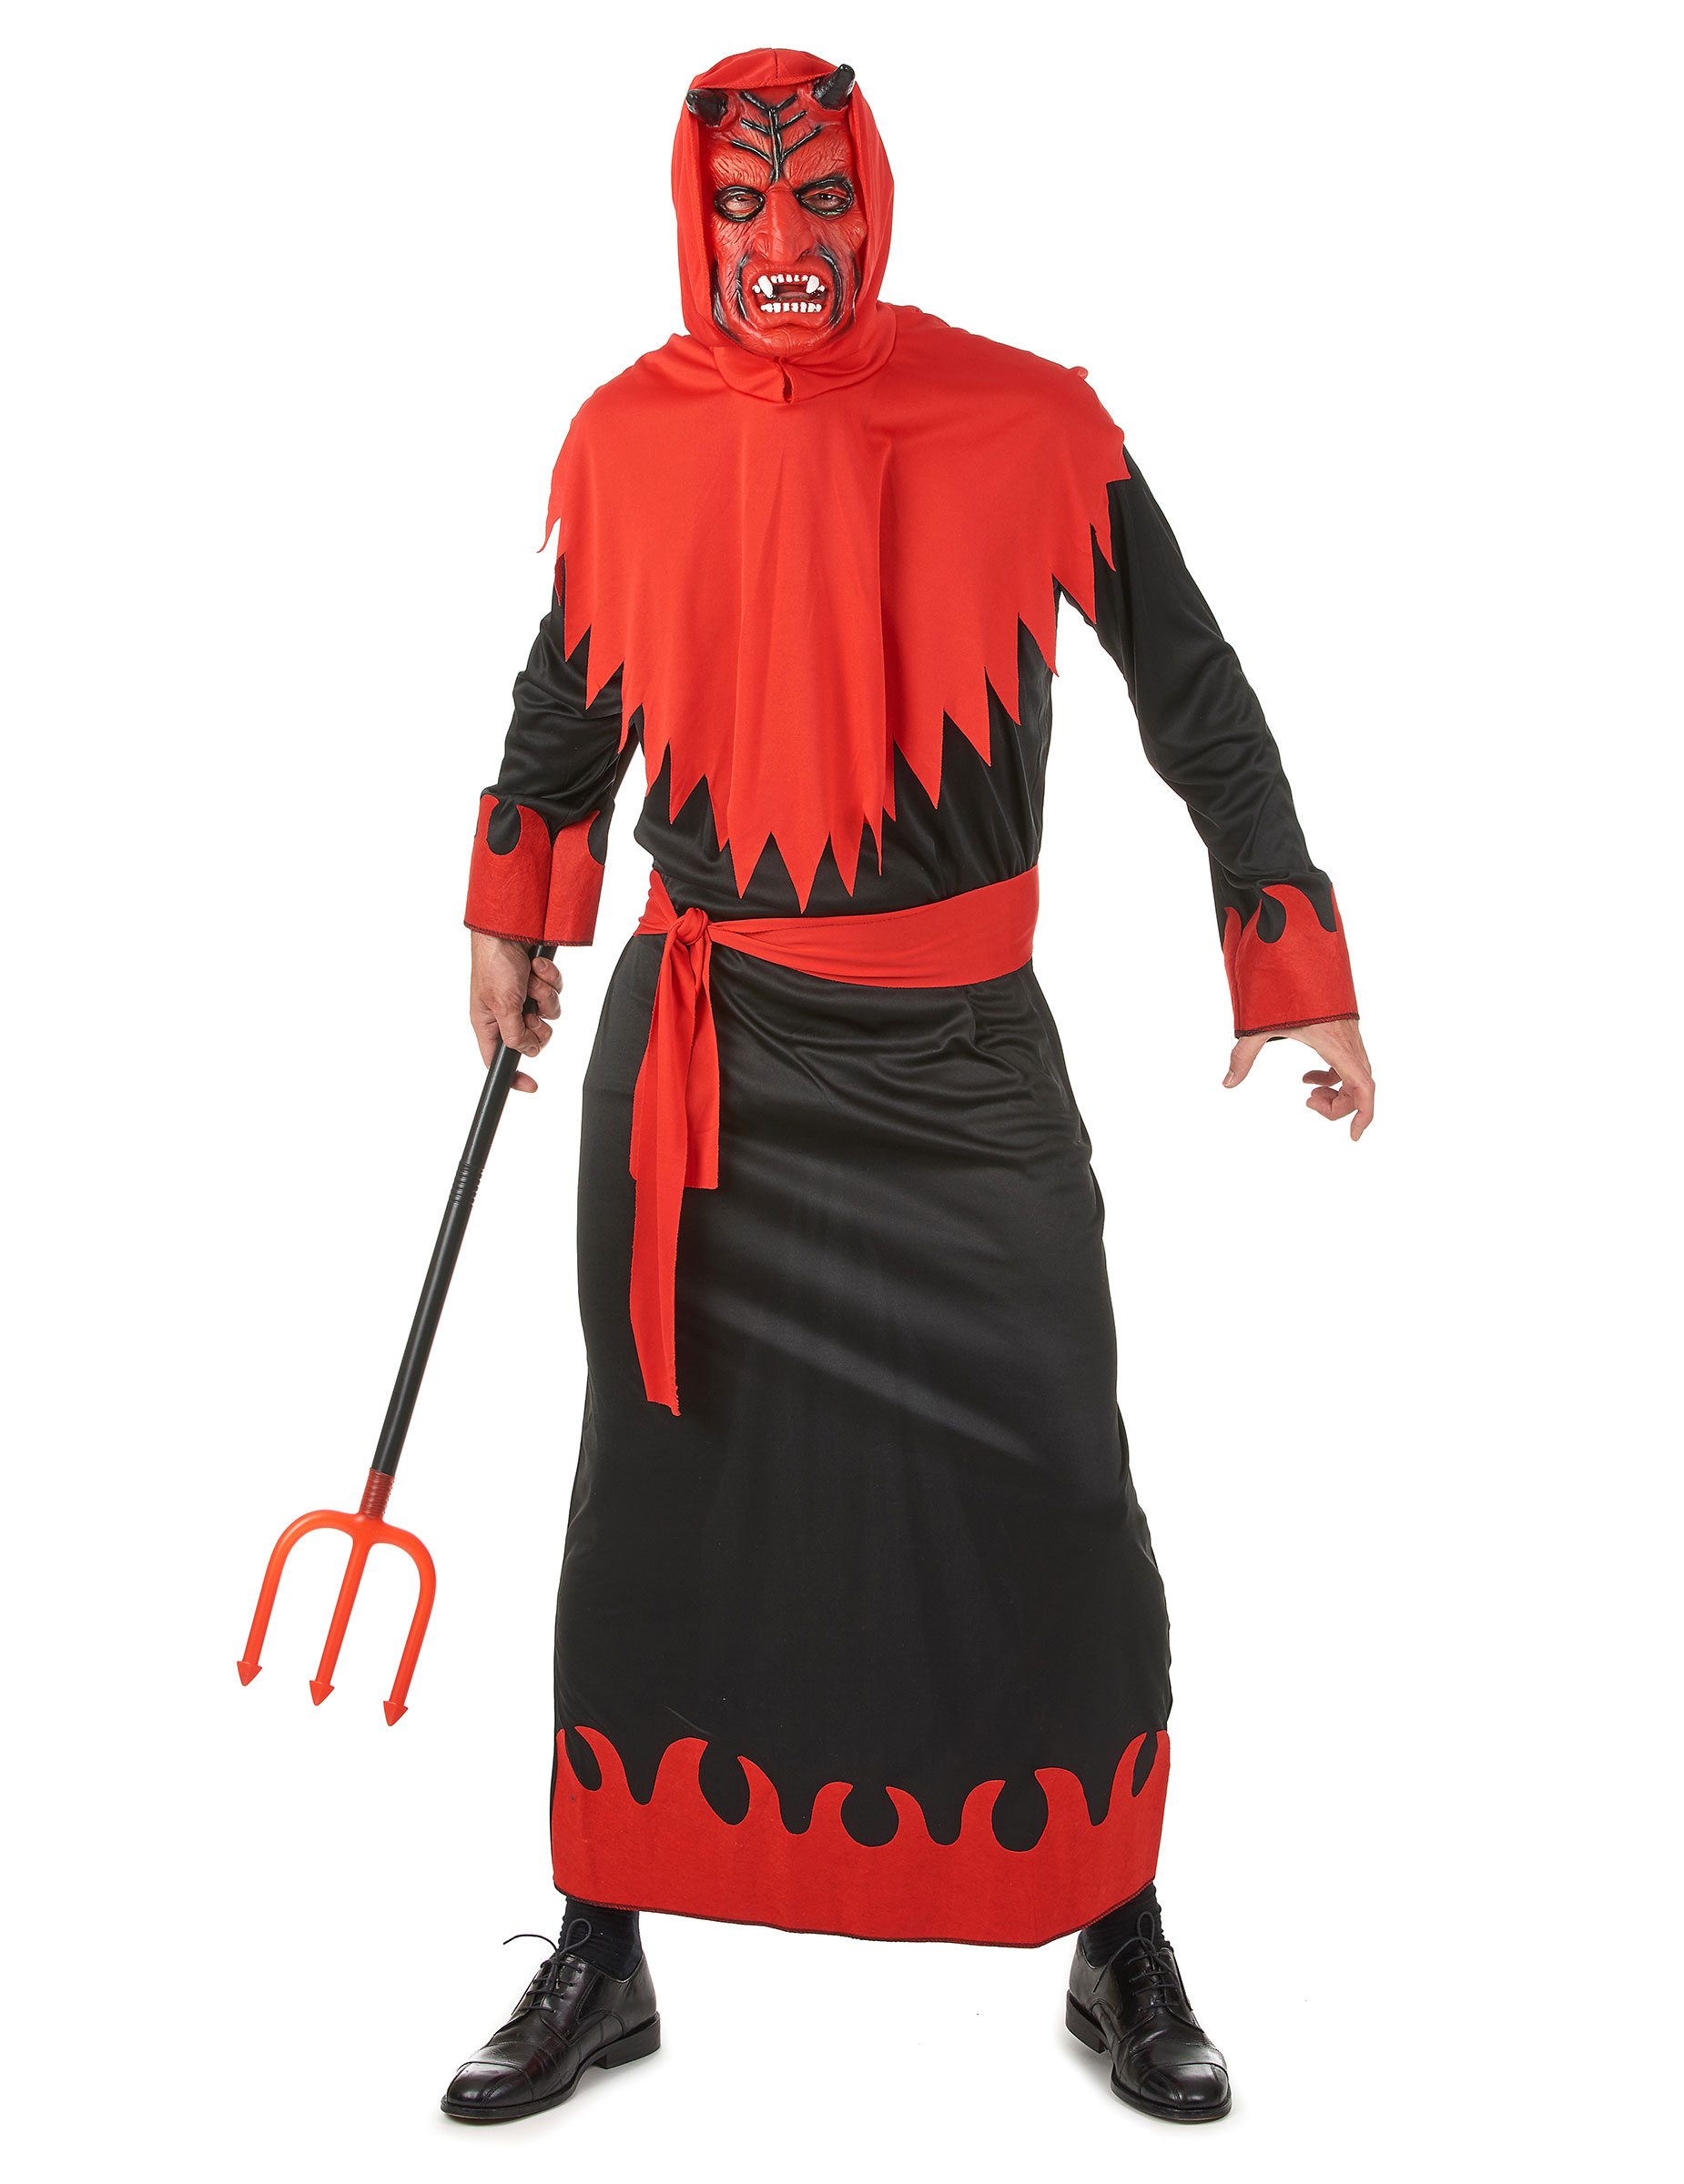 D guisement diable homme halloween deguise toi achat de d guisements adultes - Deguisement halloween adulte ...